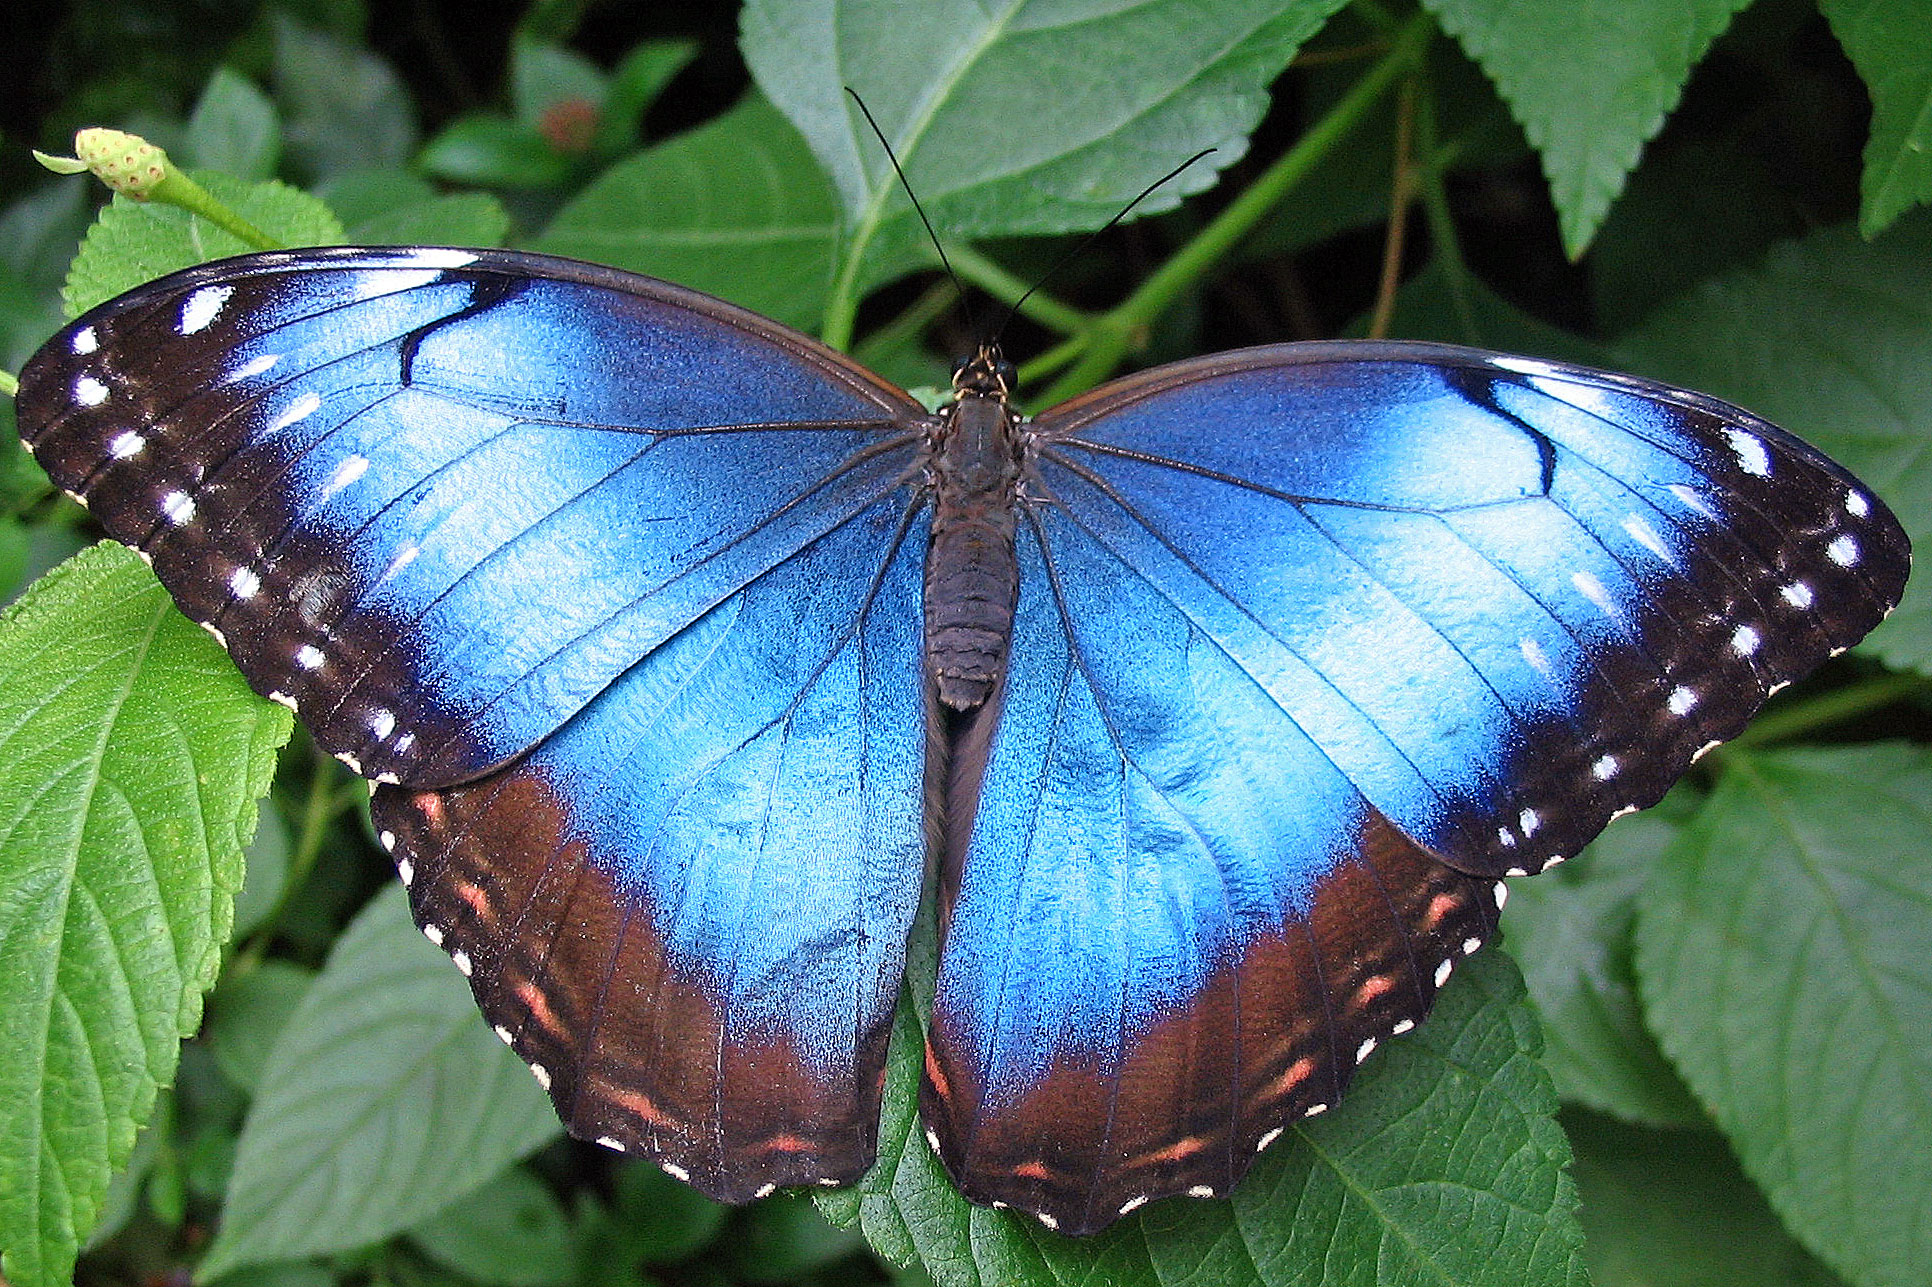 A pair of photographs showing a blue morpho butterfly and a close-up detail of its blue wing.